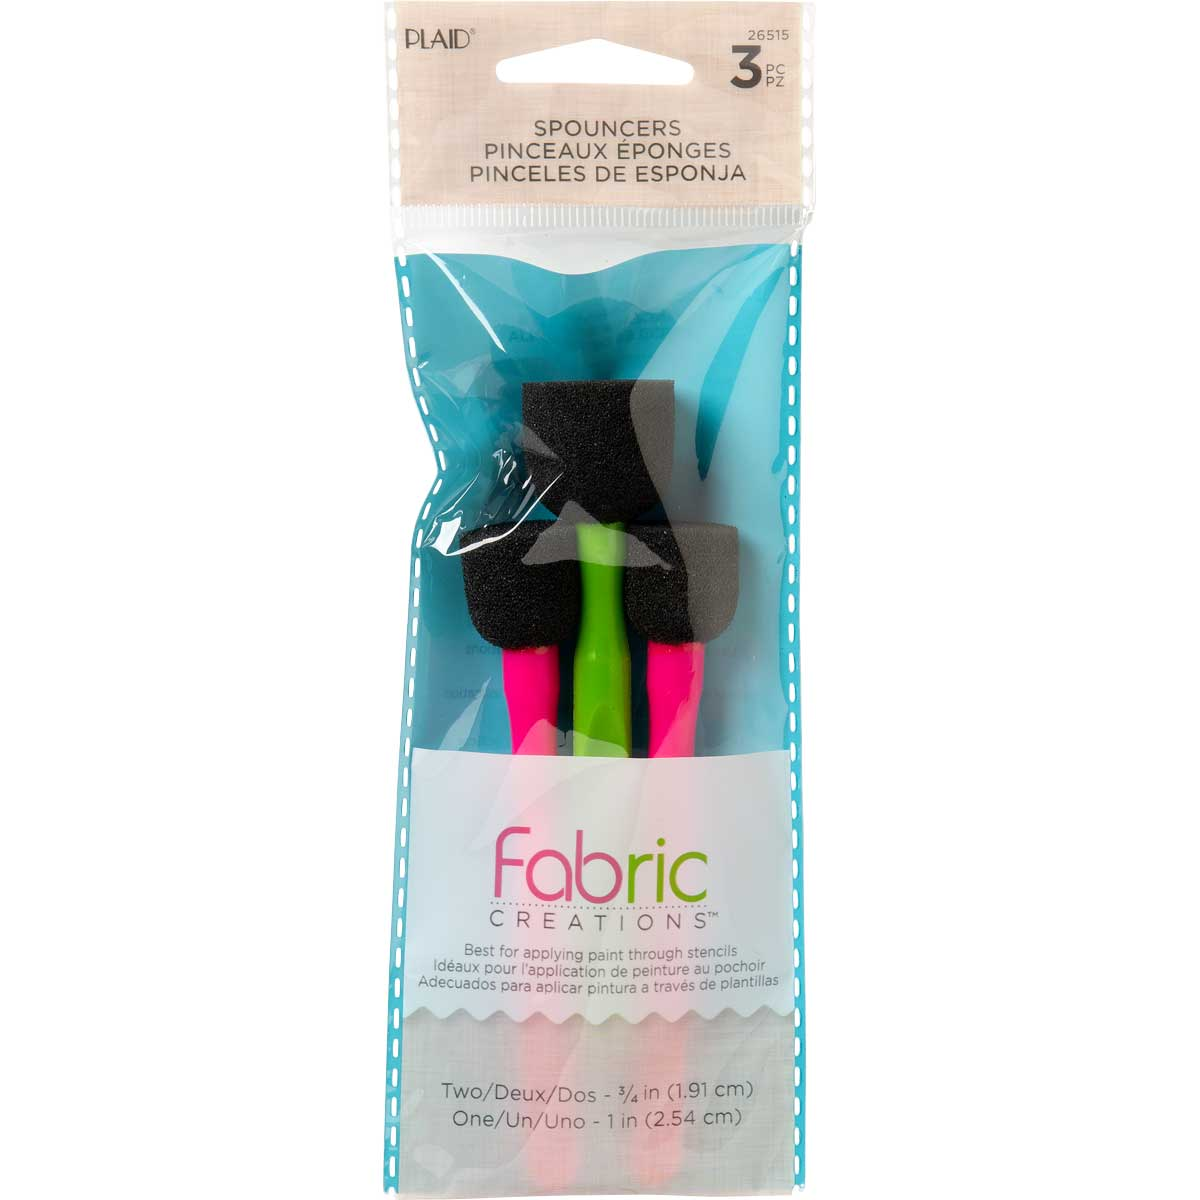 Fabric Creations™ Fabric Painting Tools - Spouncer Set, 3 piece